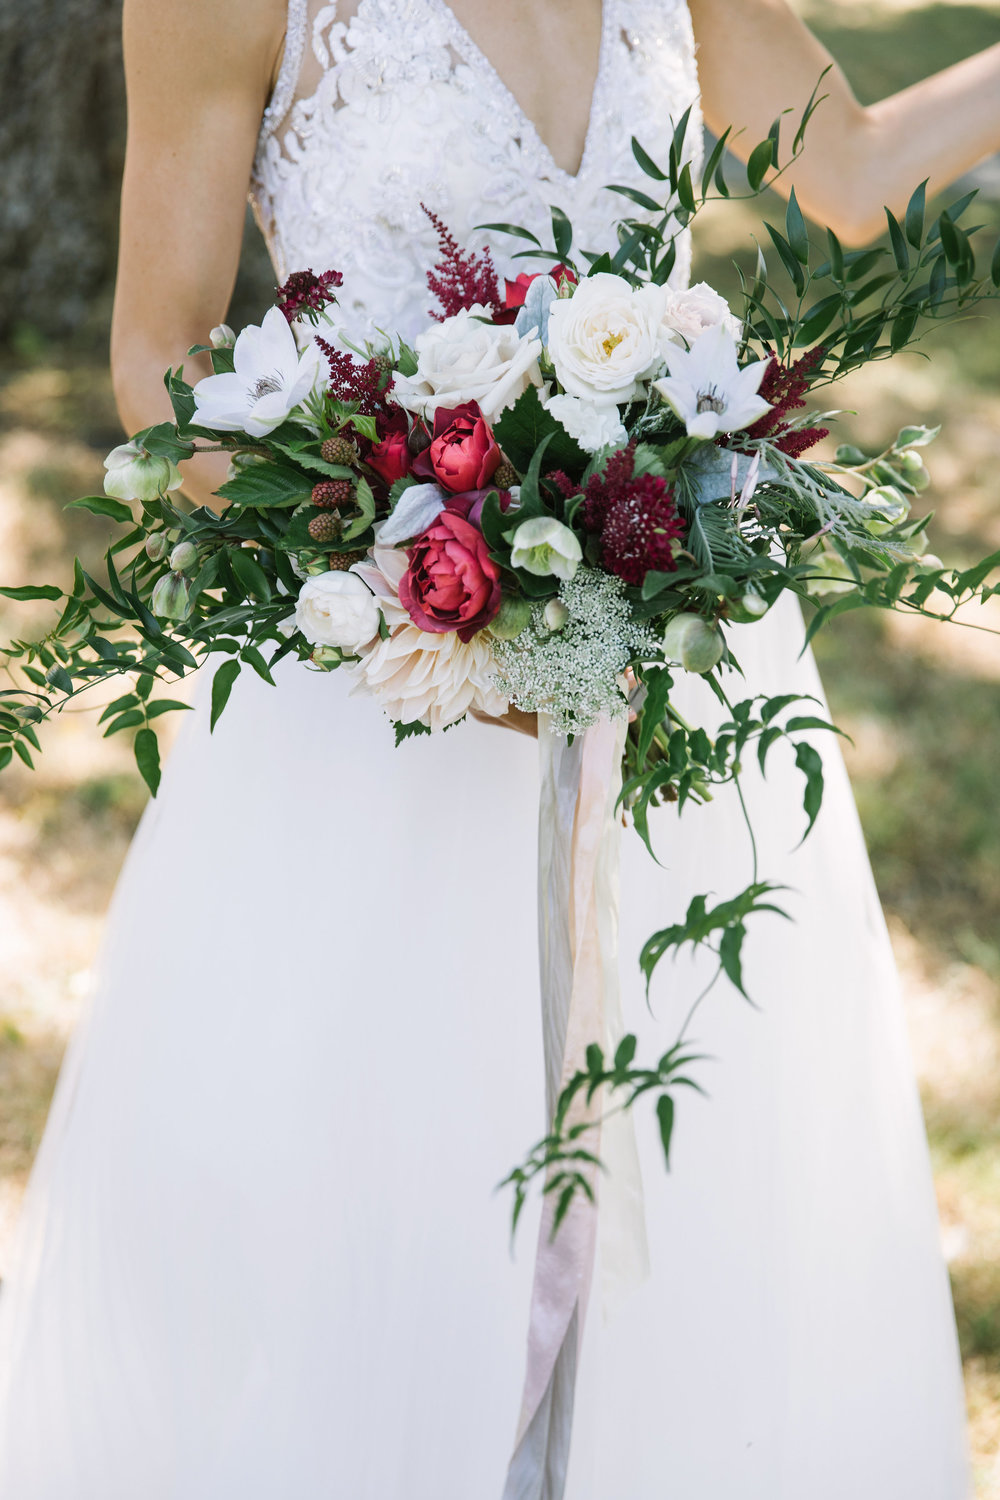 Wild bridal bouquet with roses, vines, and berries in coral red, cream and green by Venn Floral at Olympia's Valley Estate photographed by The Edges.